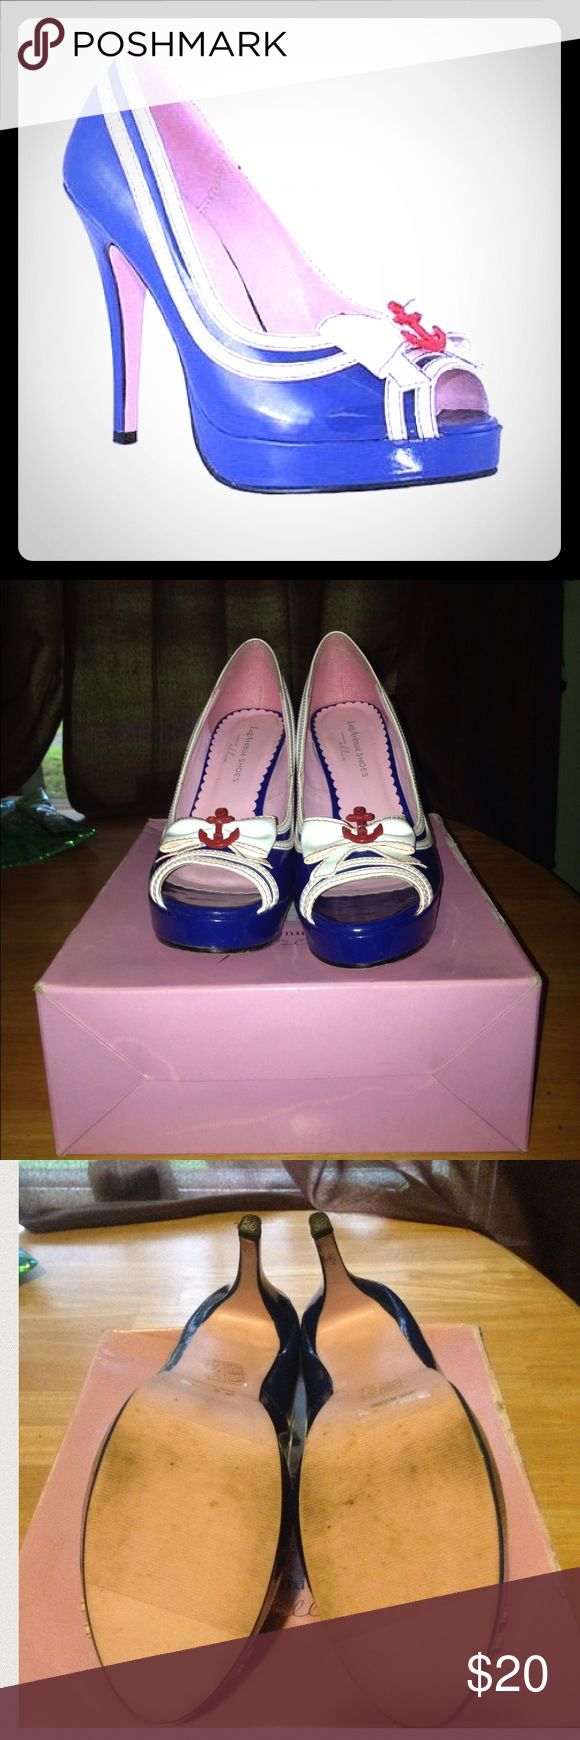 Sailor High Heels ⚓️ You gotta put on you sailing shoes, so why not make them fashionable?  Barely used, in box, Leg Avenue Sailor High Heels (calm your horn Popeye).  Slight scruff on the bottom but stickers are still in tact.  Worn them 1 time for a fun 4th of July photoshoot. Leg Avenue Shoes Heels